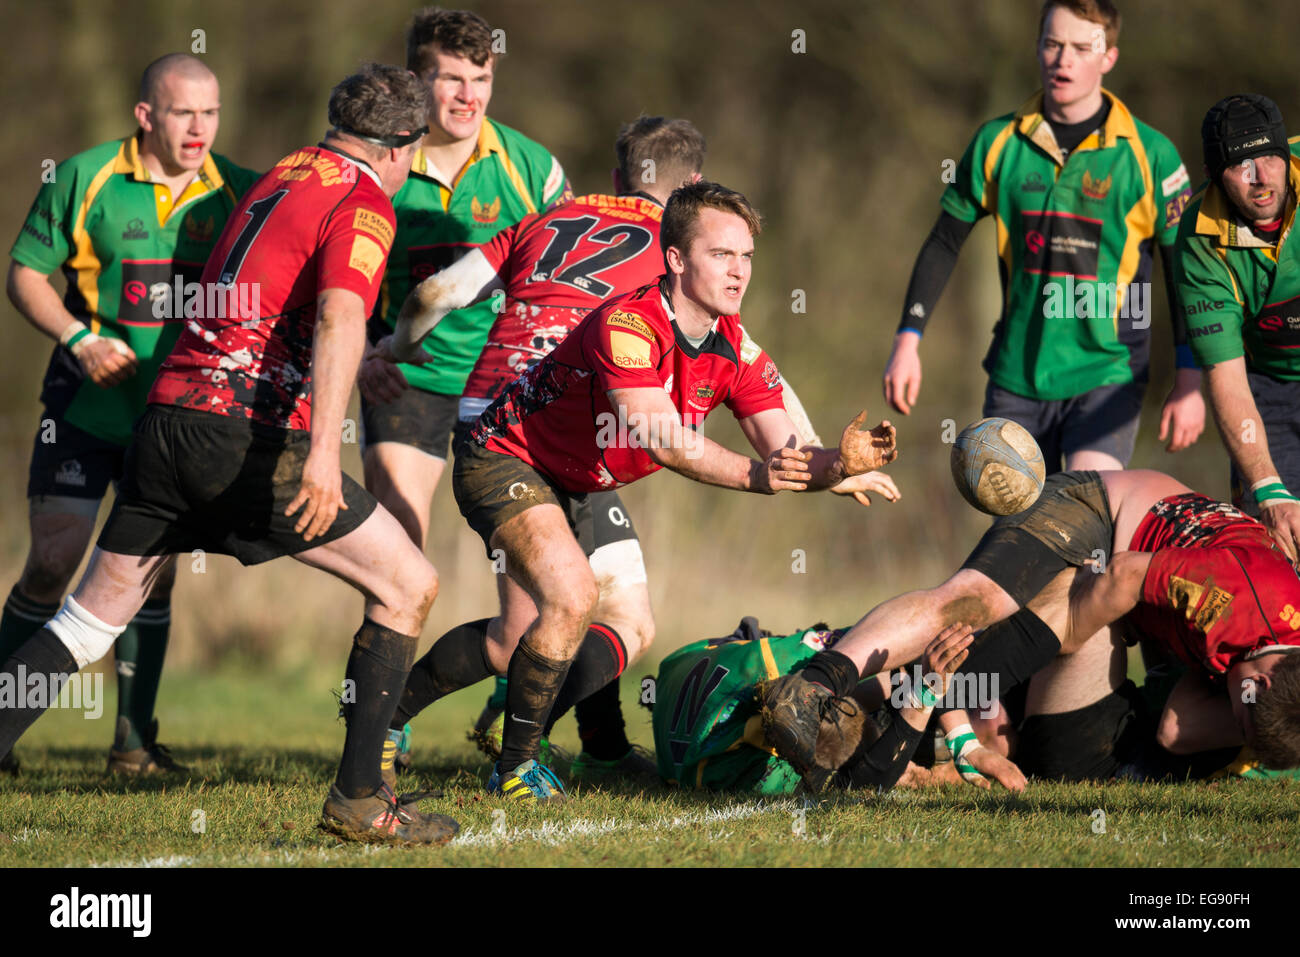 Rugby, scrum half in action. - Stock Image